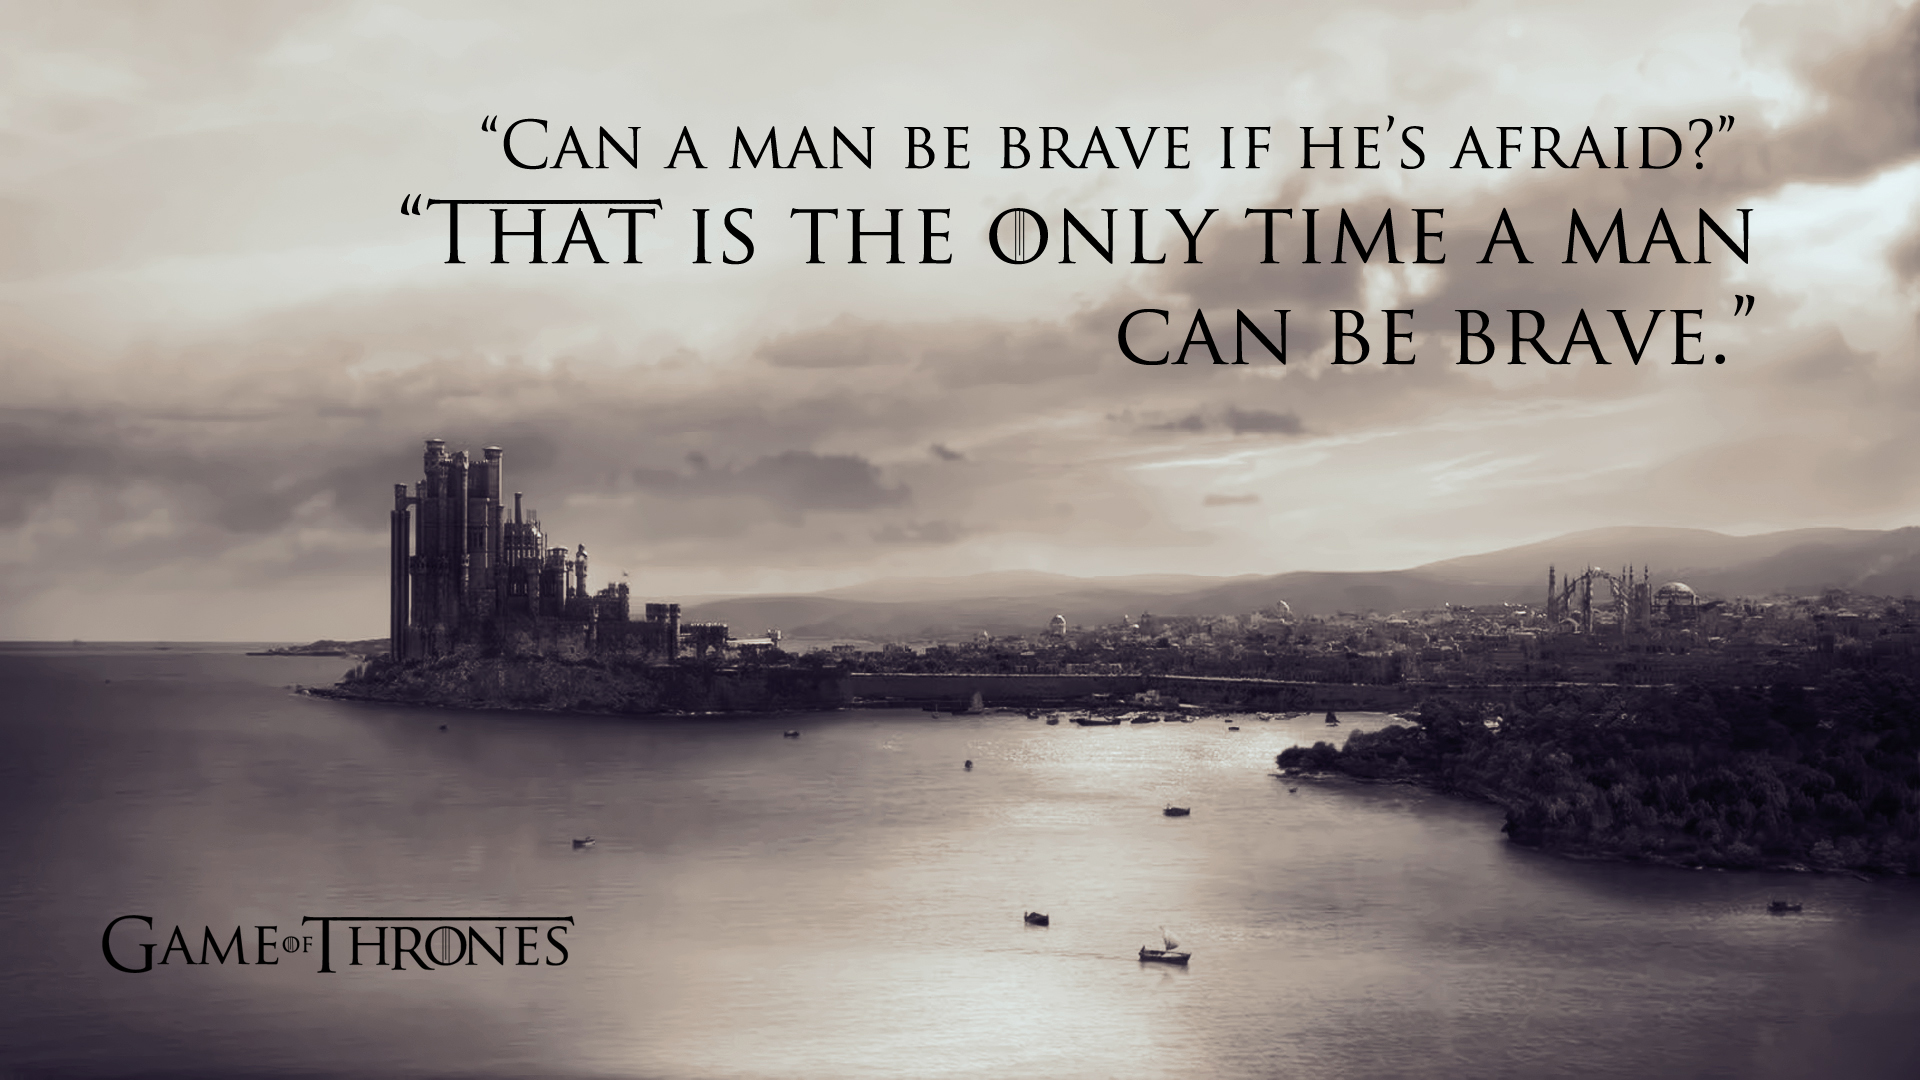 Games of Thrones quote